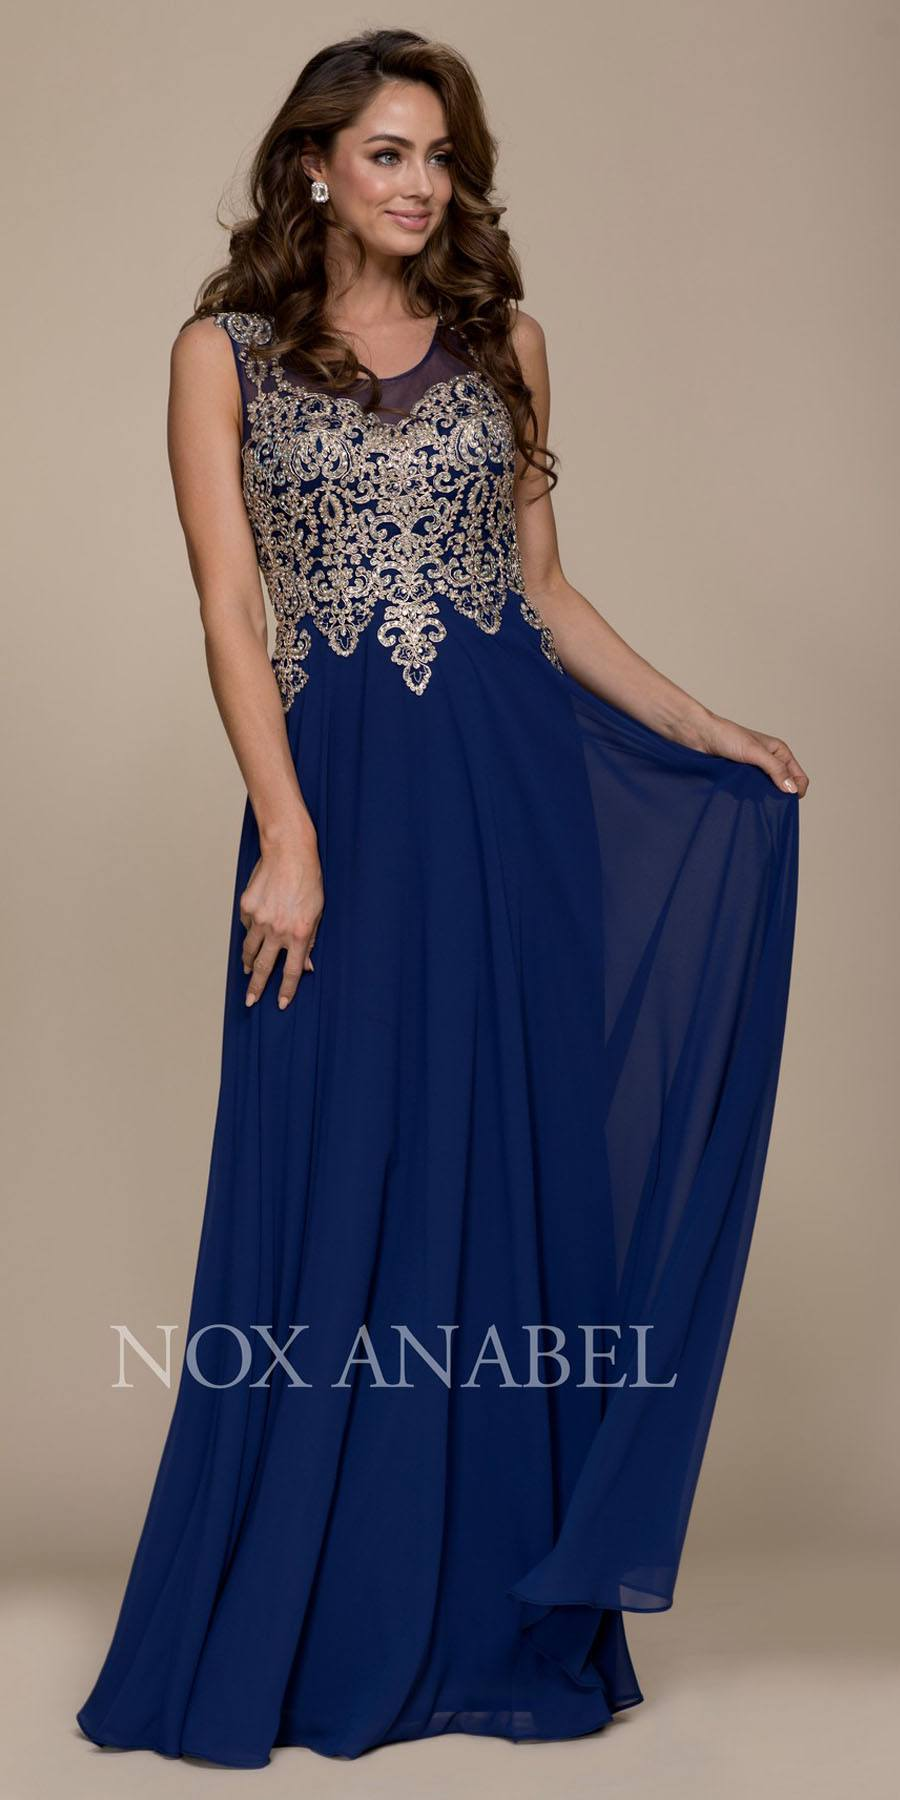 21d517f96e Sleeveless Long Formal Dress Embroidered Bodice Navy Blue-Gold. Tap to  expand